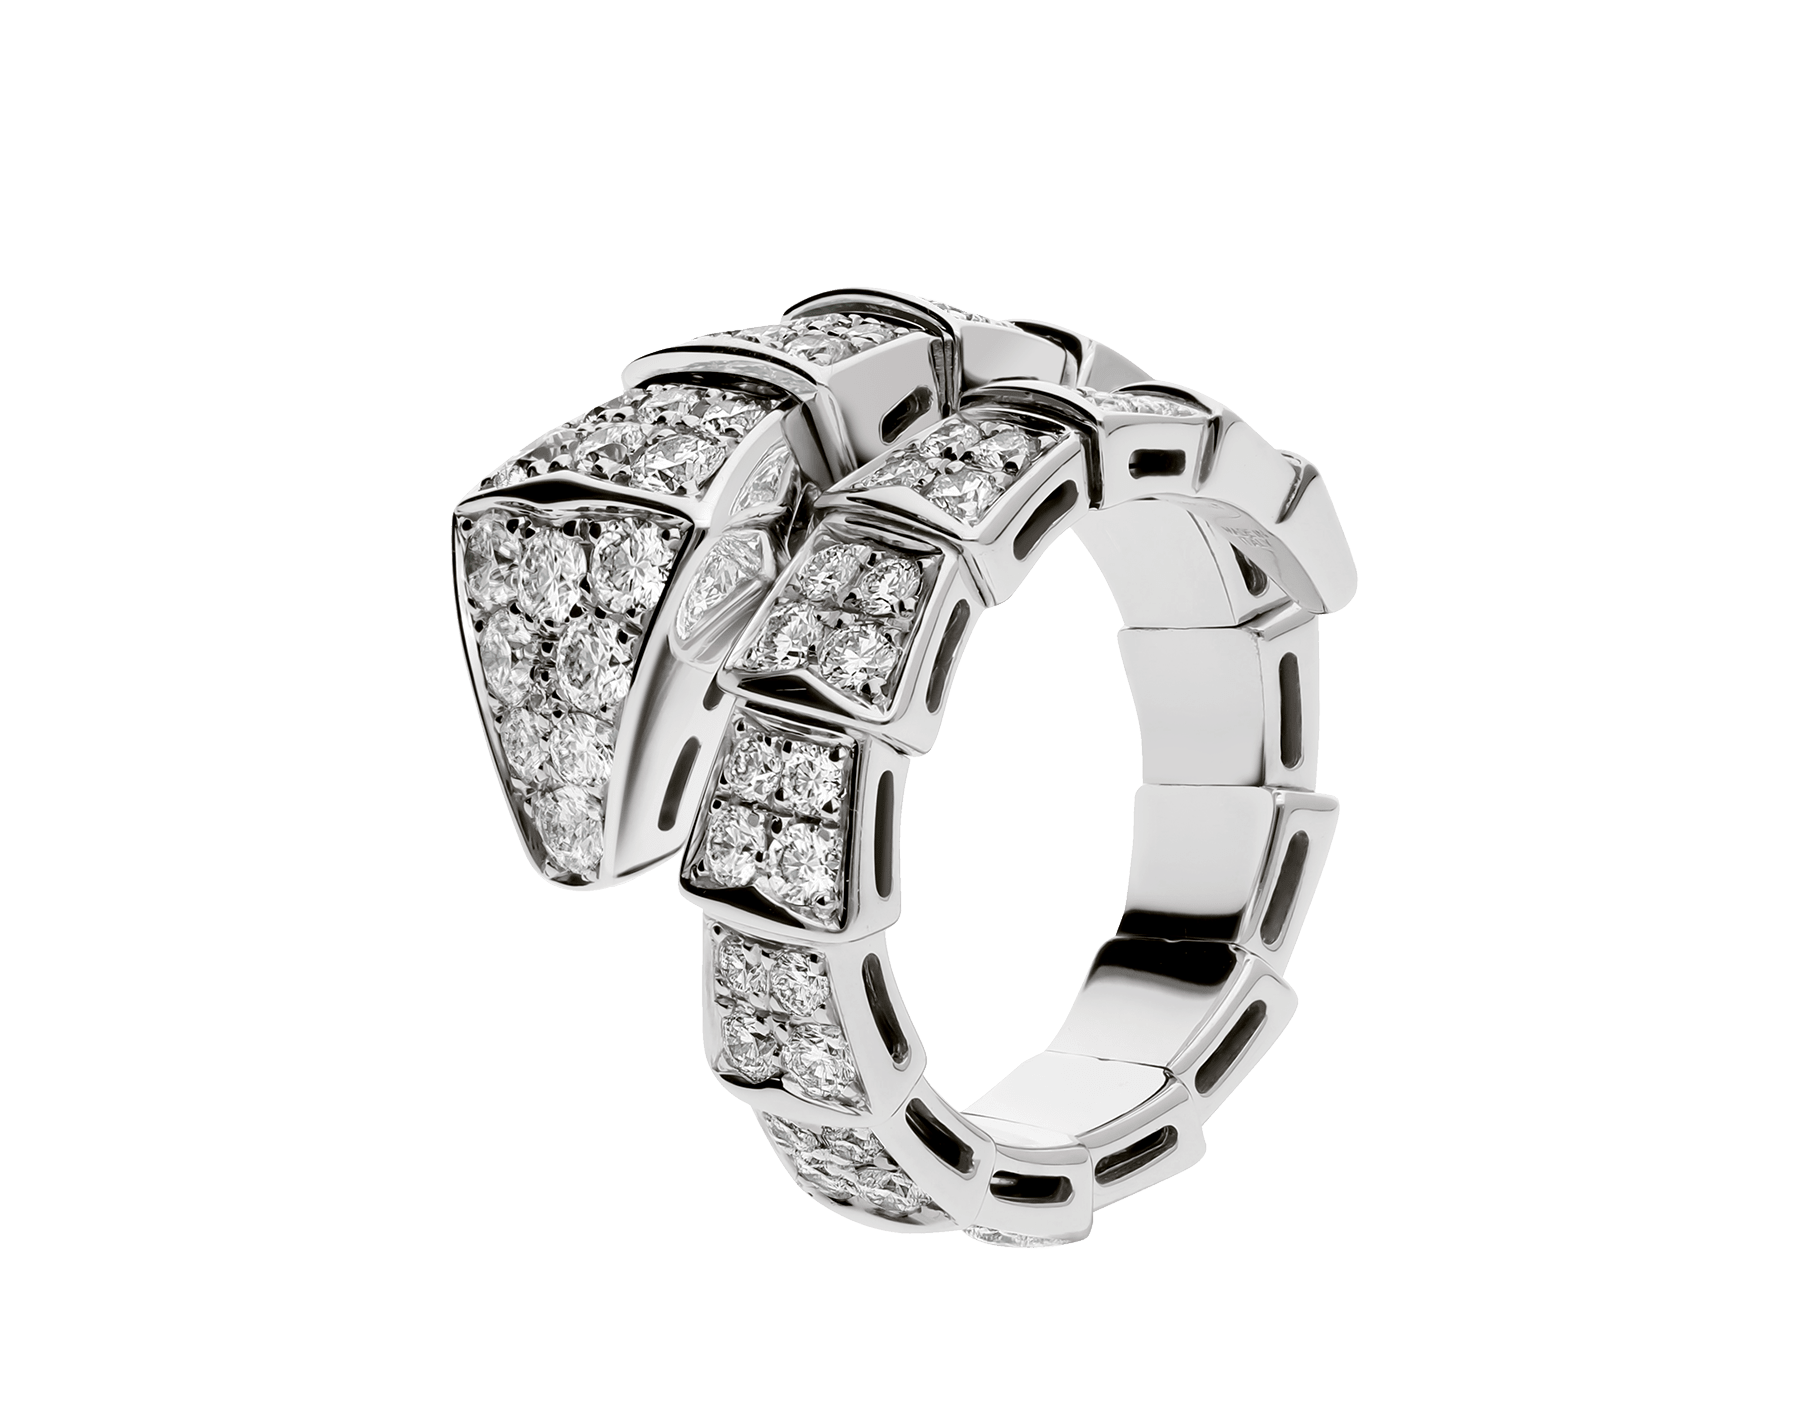 Serpenti Viper one-coil ring in 18 kt white gold, set with full pavé diamonds. AN855116 image 1